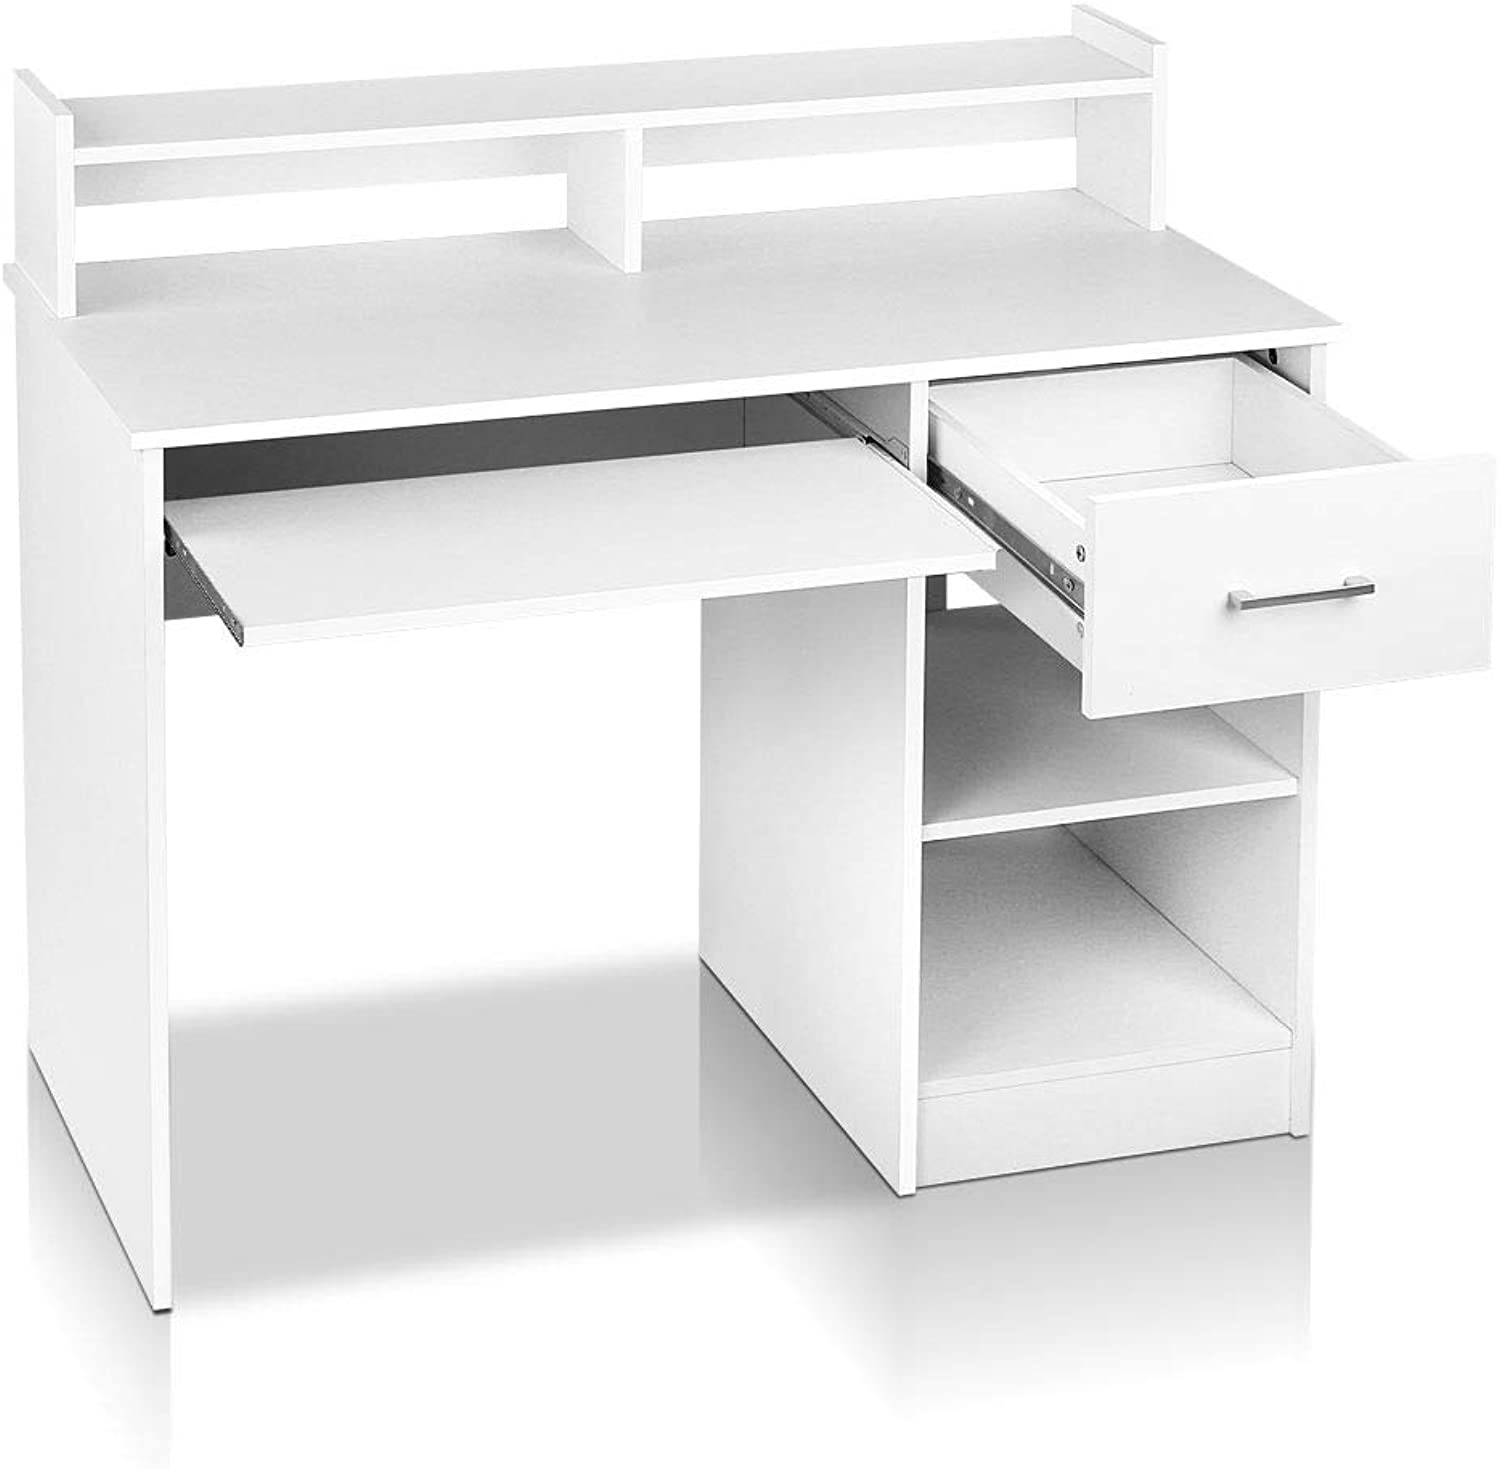 Artiss Office Computer Desk Wooden Home PC Gaming Study Table with Book Display Shelf White